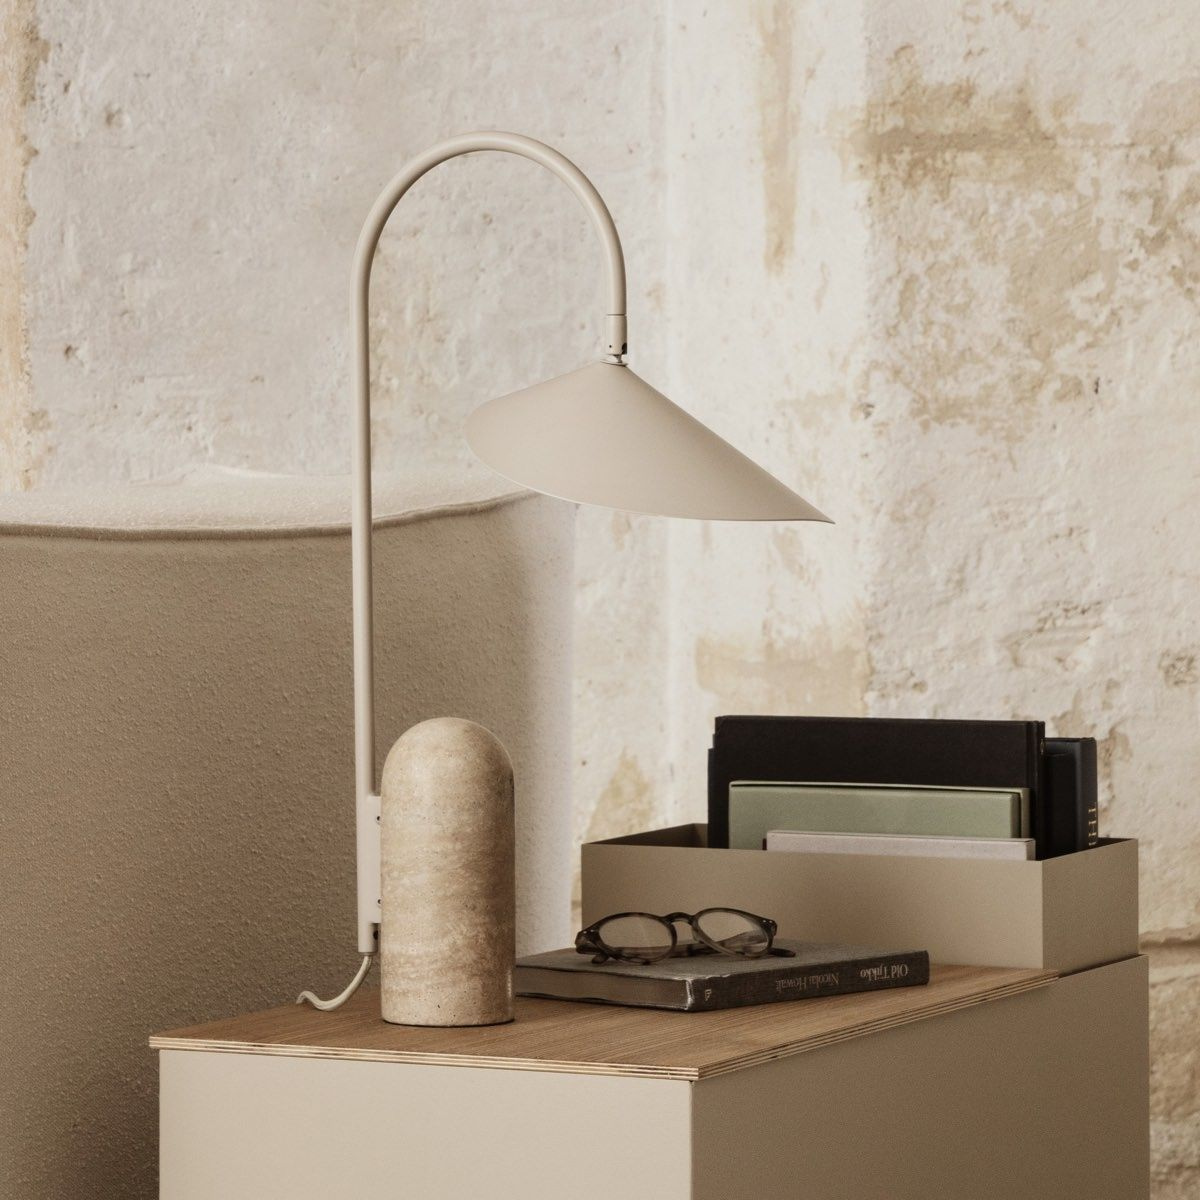 Ferm Living Arum Table Lamp on the plant box